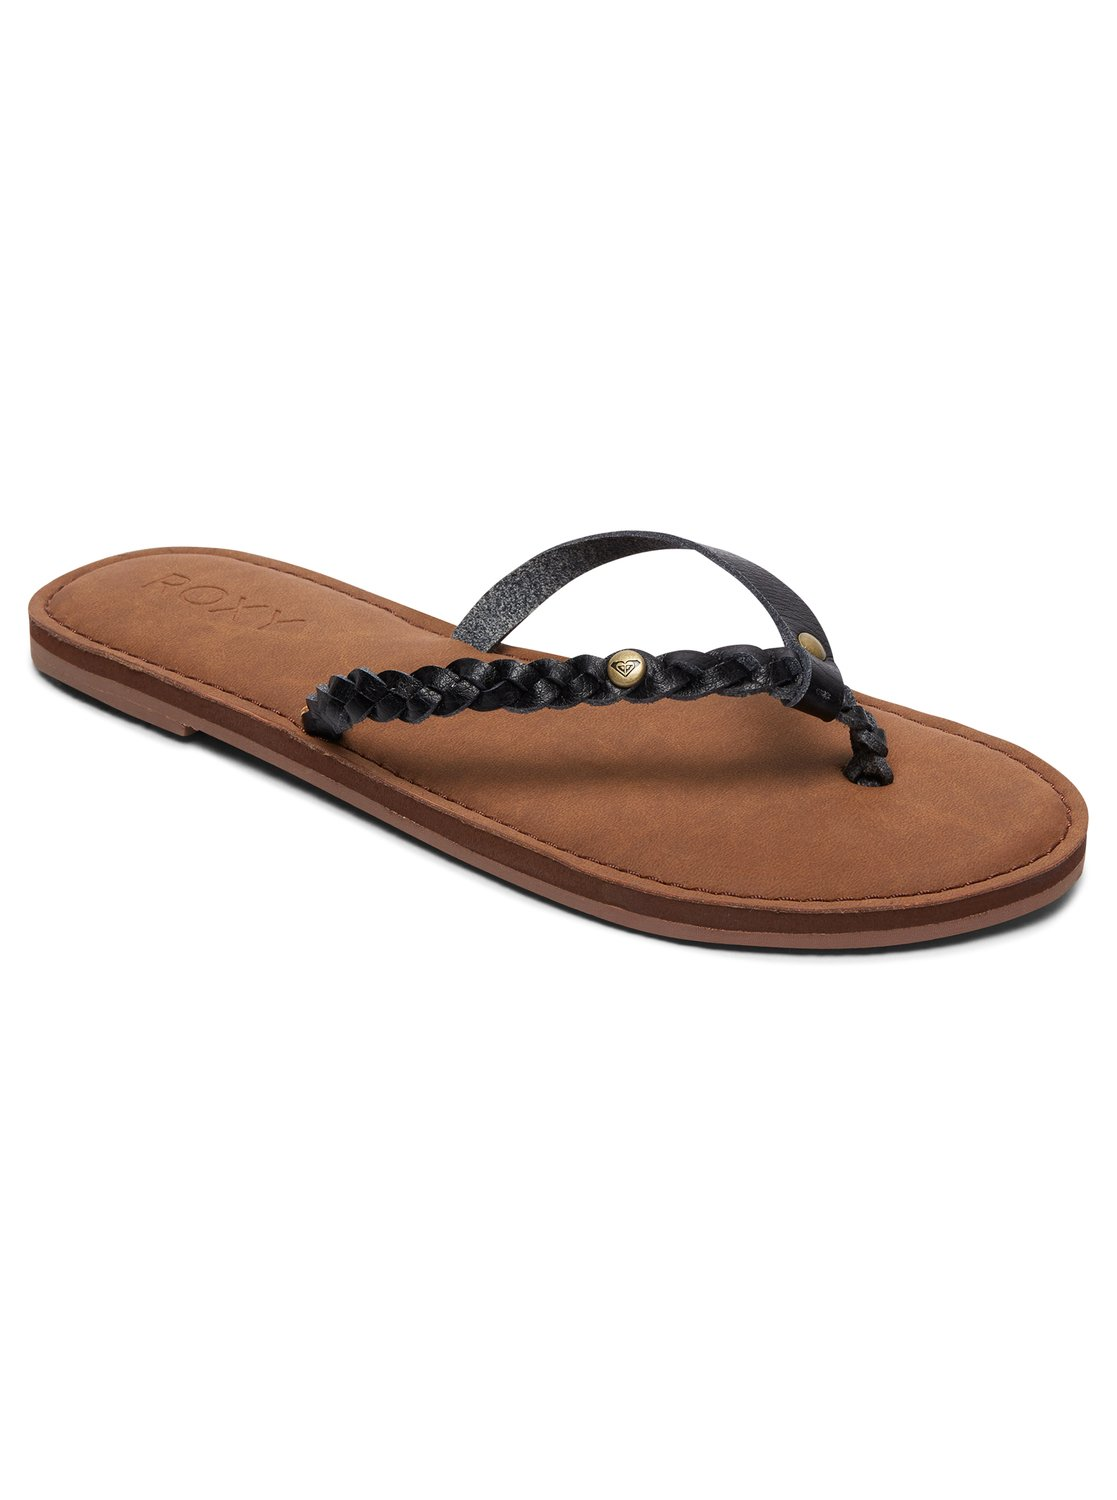 e2aa991d20880 0 Livia - Sandals for Women Black ARJL200619 Roxy